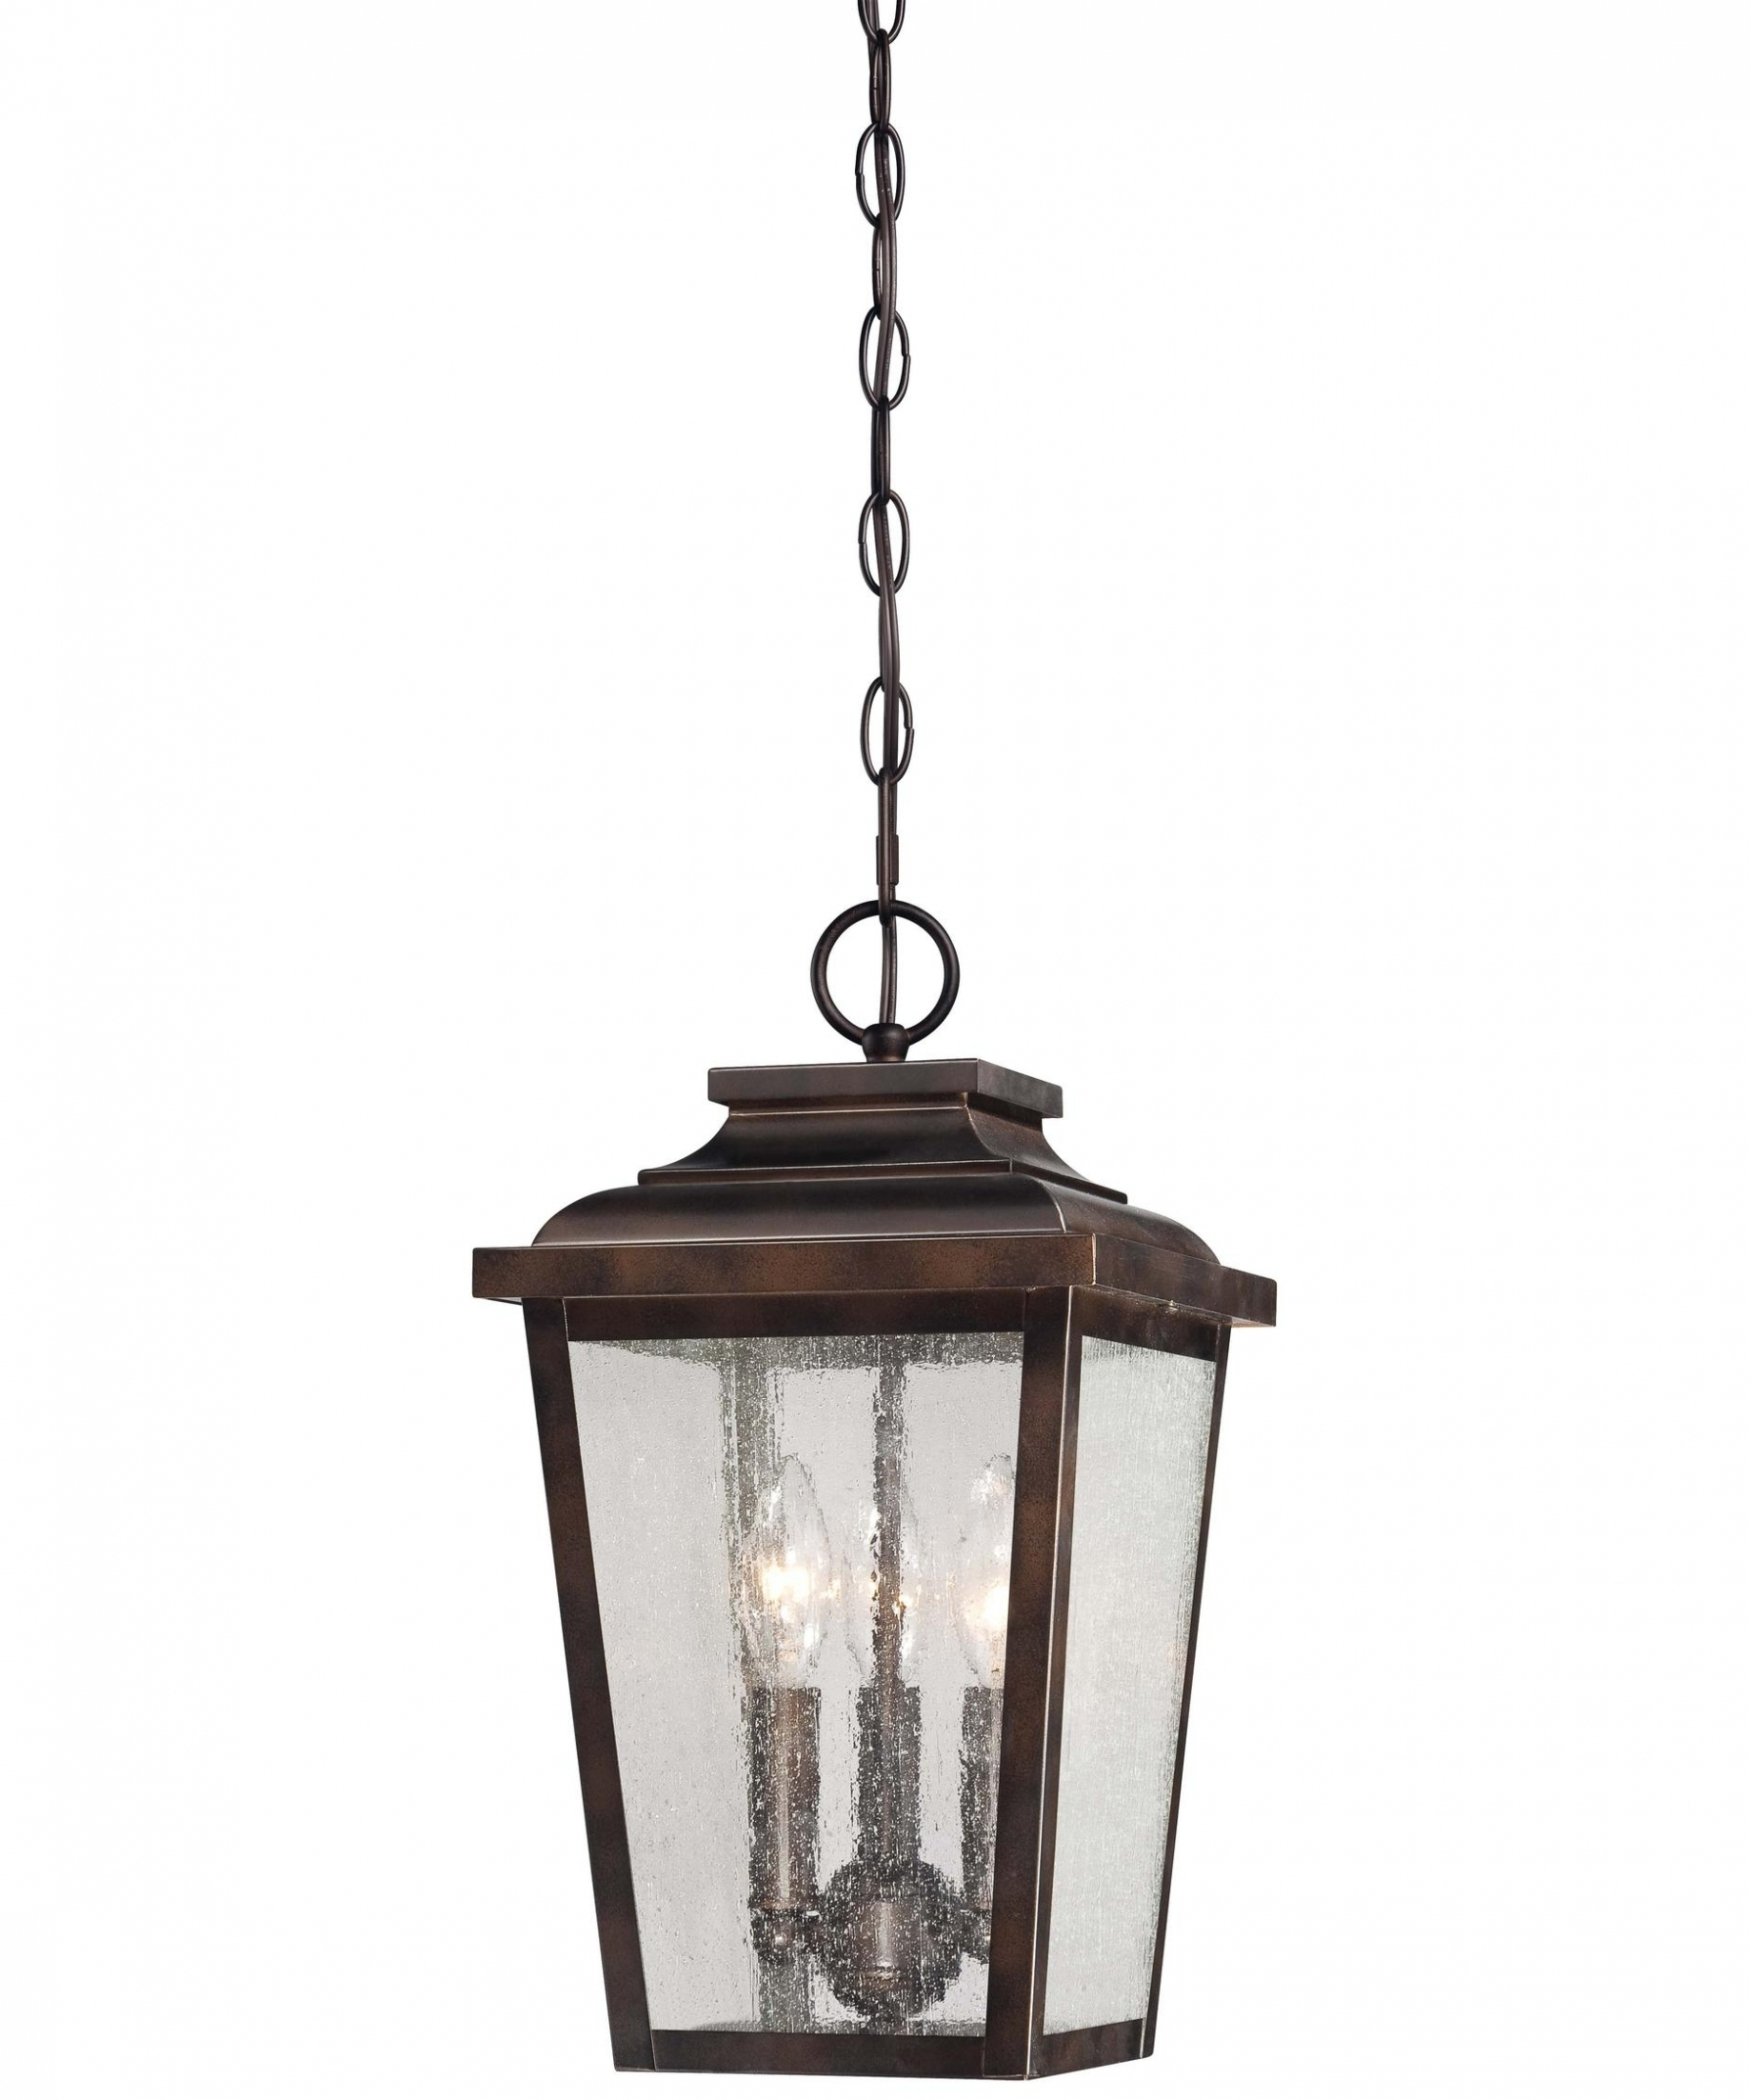 Lamp & Lighting: Hanging Outdoor Porch Light Fixtures • Outdoor Within Hanging Outdoor Lights (#9 of 15)